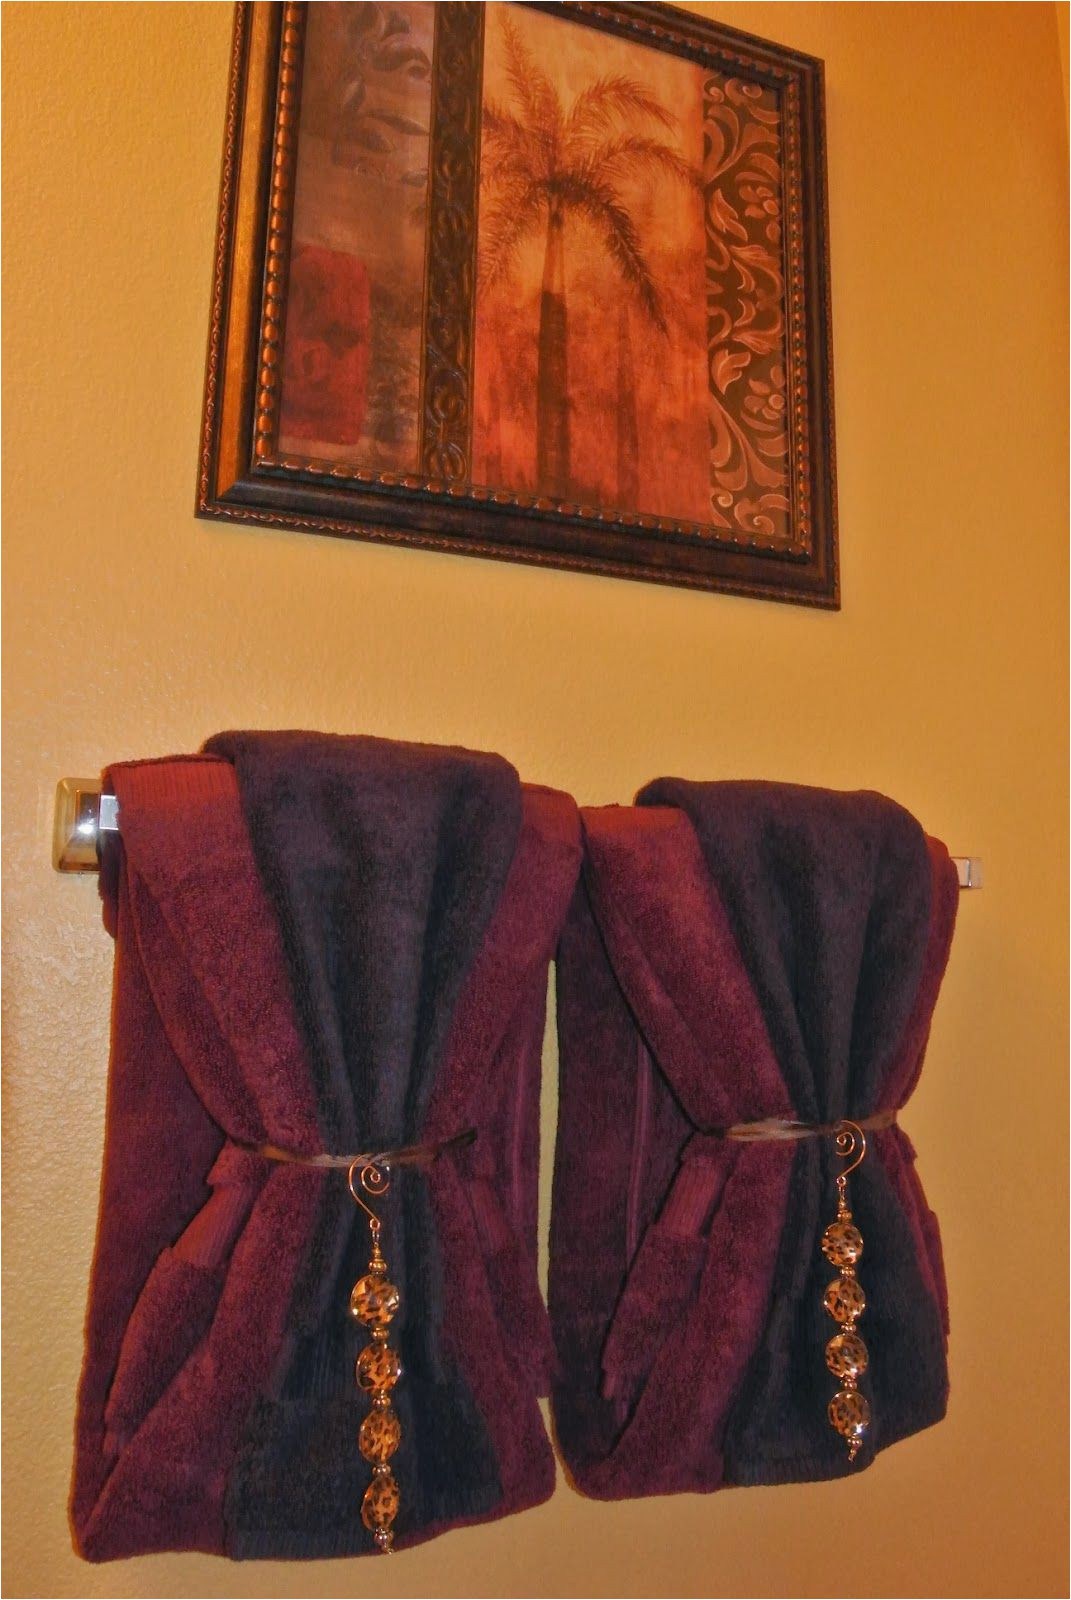 Gold Bath towels and Rugs to Match Bathroom towel Decor Idea Need the Right Color Of towels